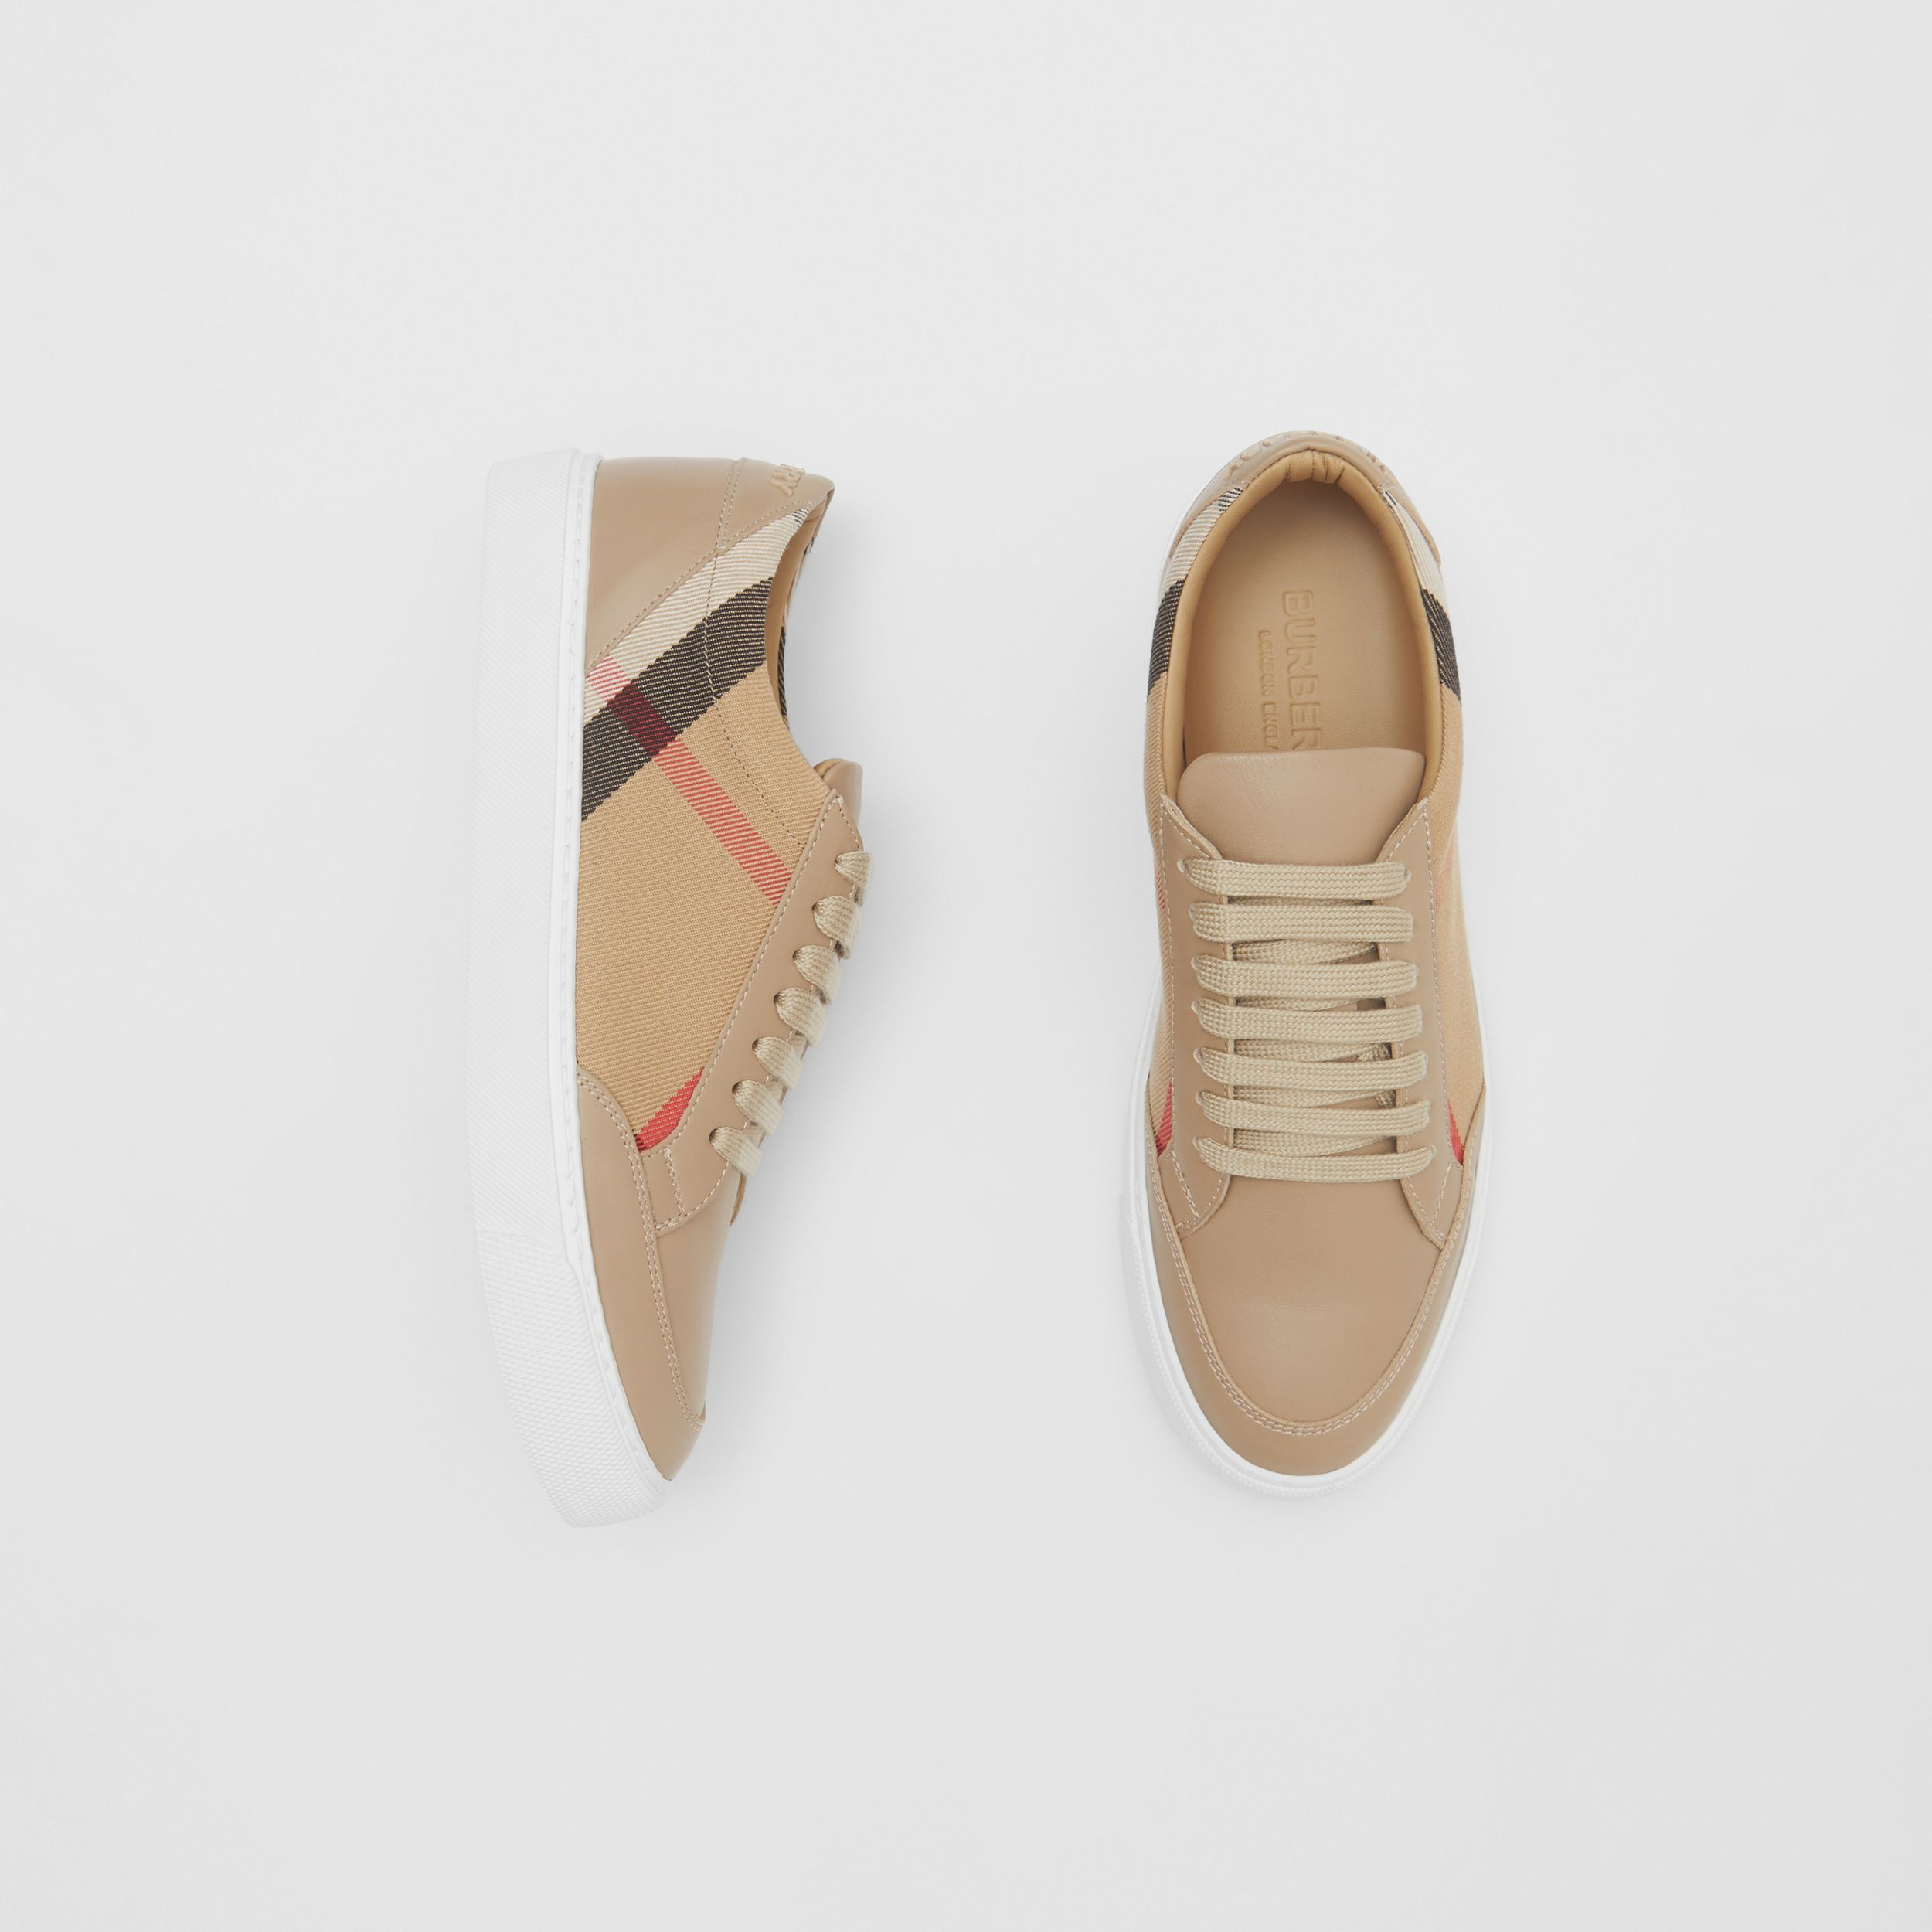 House Check and Leather Sneakers in Tan - Women | Burberry Canada - 1